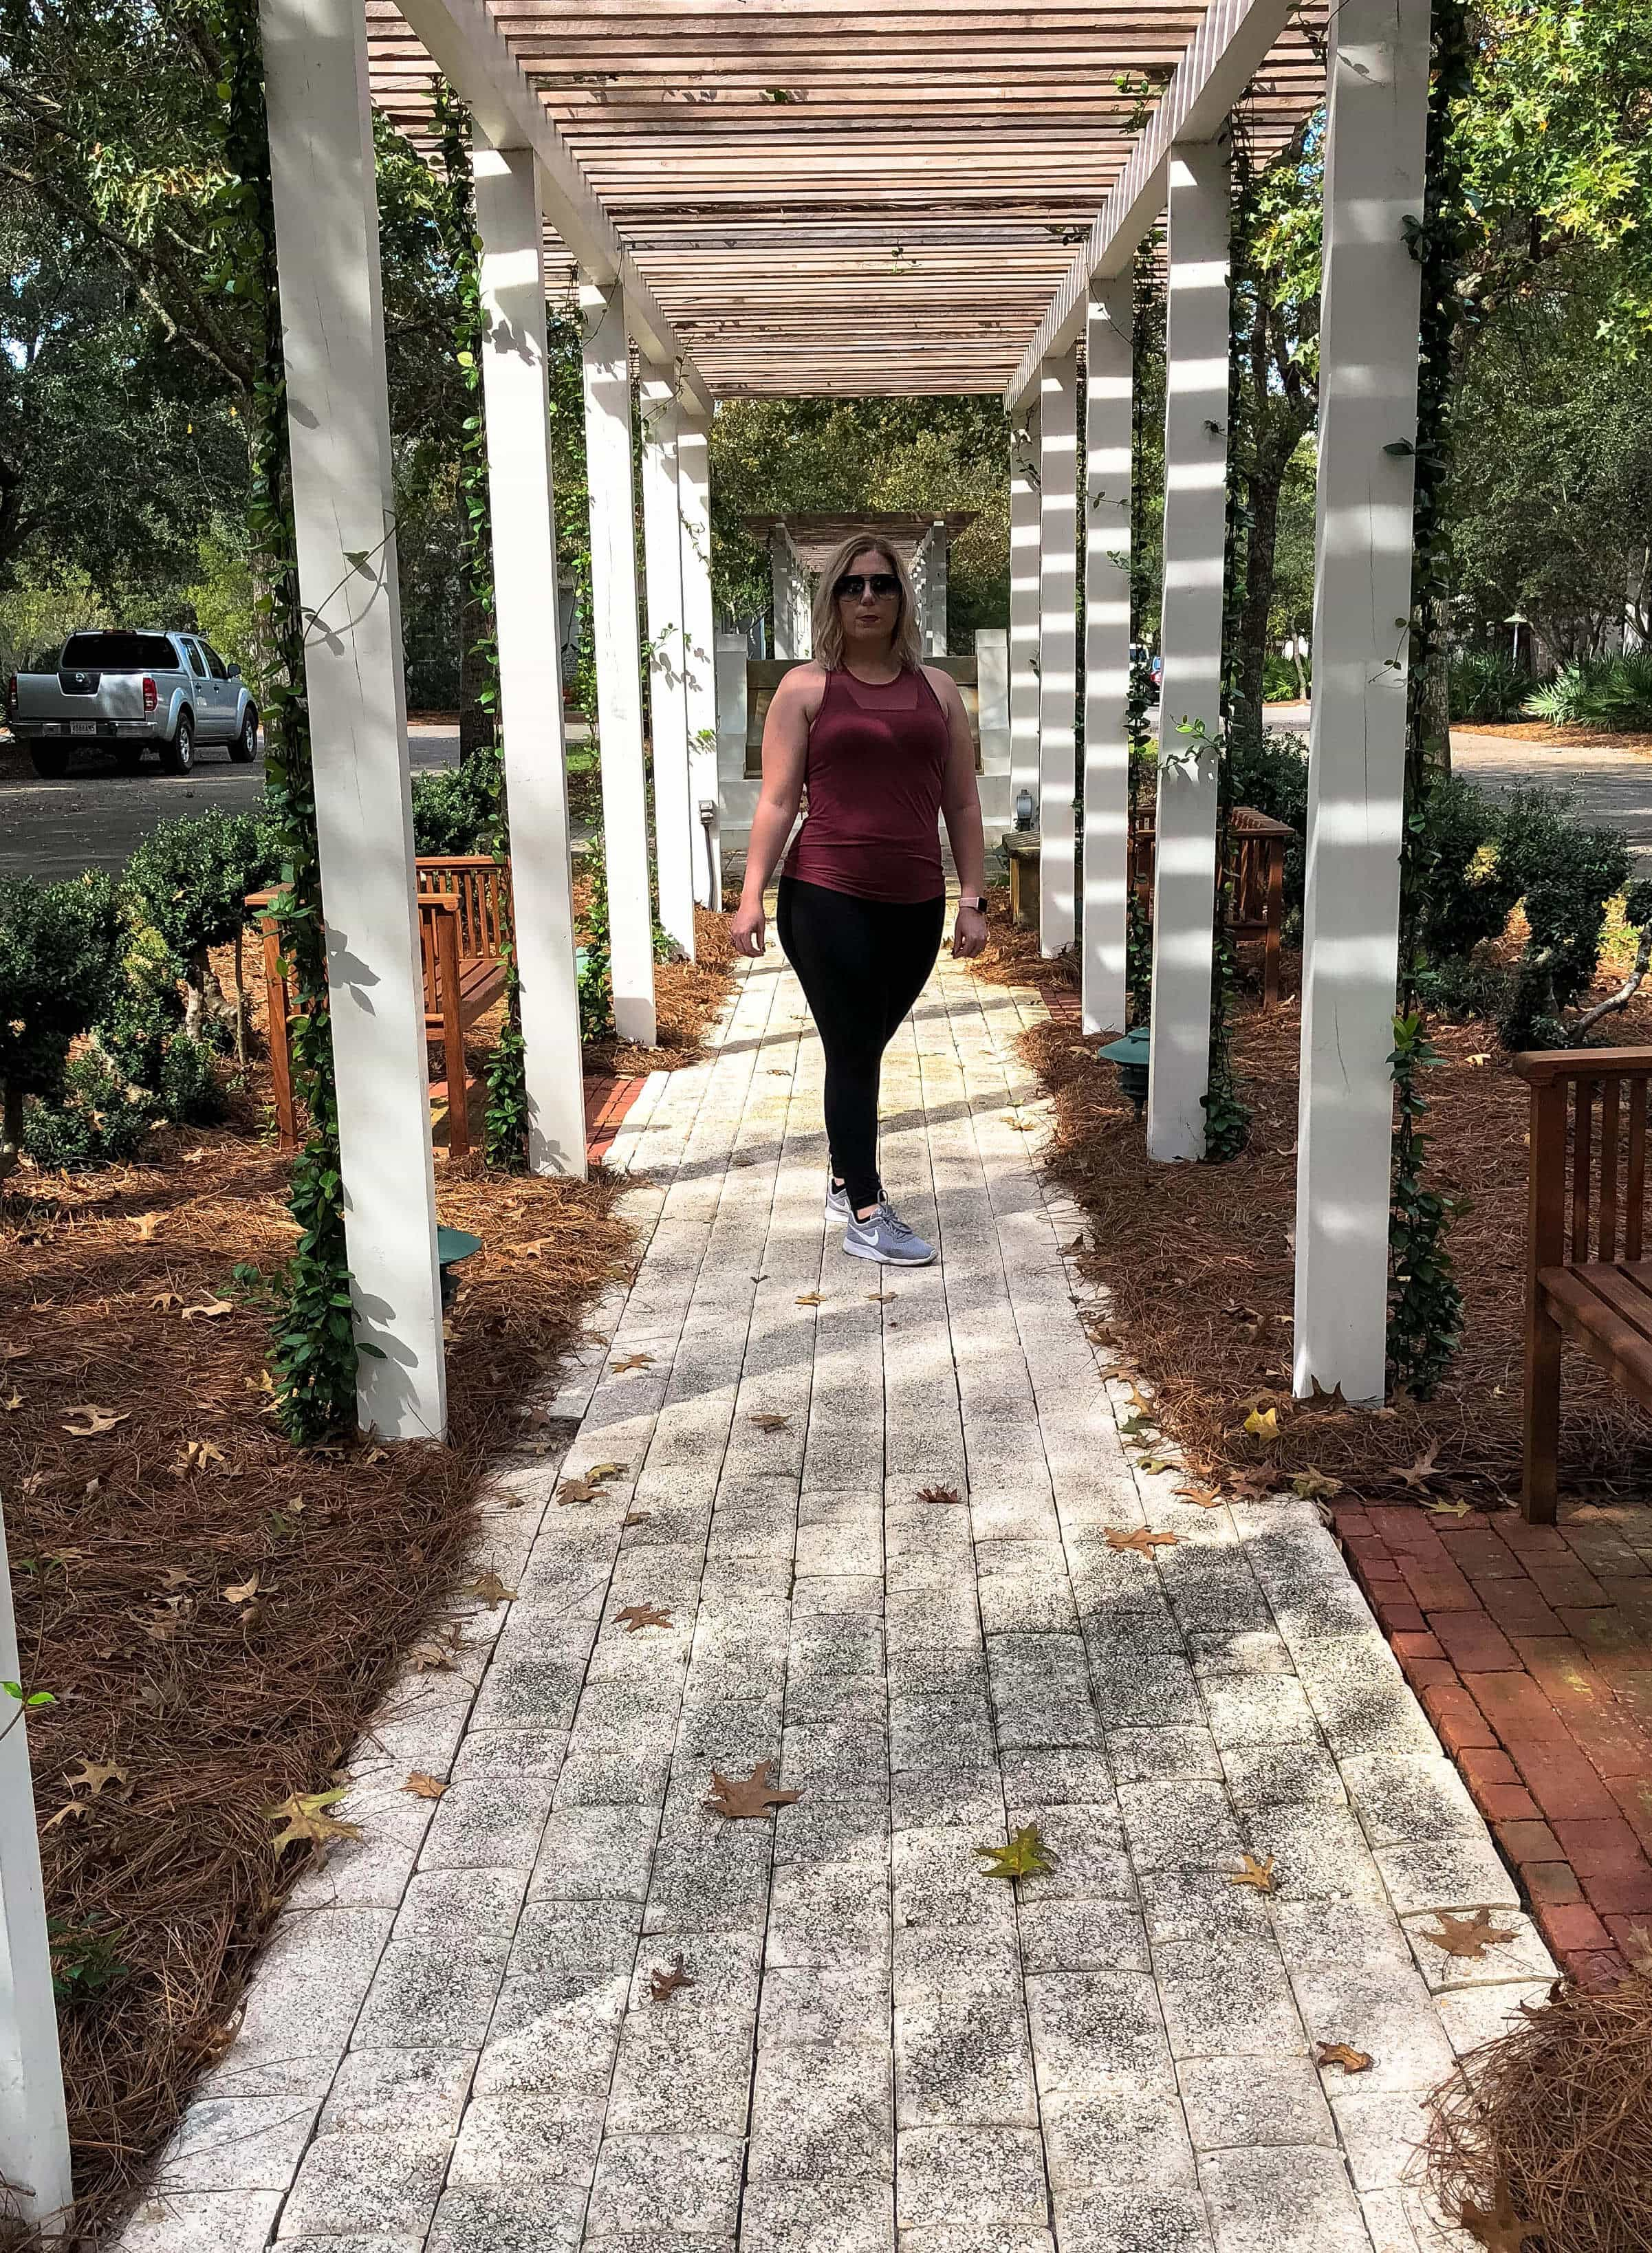 How I'm Staying Inspired With My Workouts #saveeandsavory #lifestyle #wellness #goals #mentalhealth #exploremore #alysbeach #bemoreactive